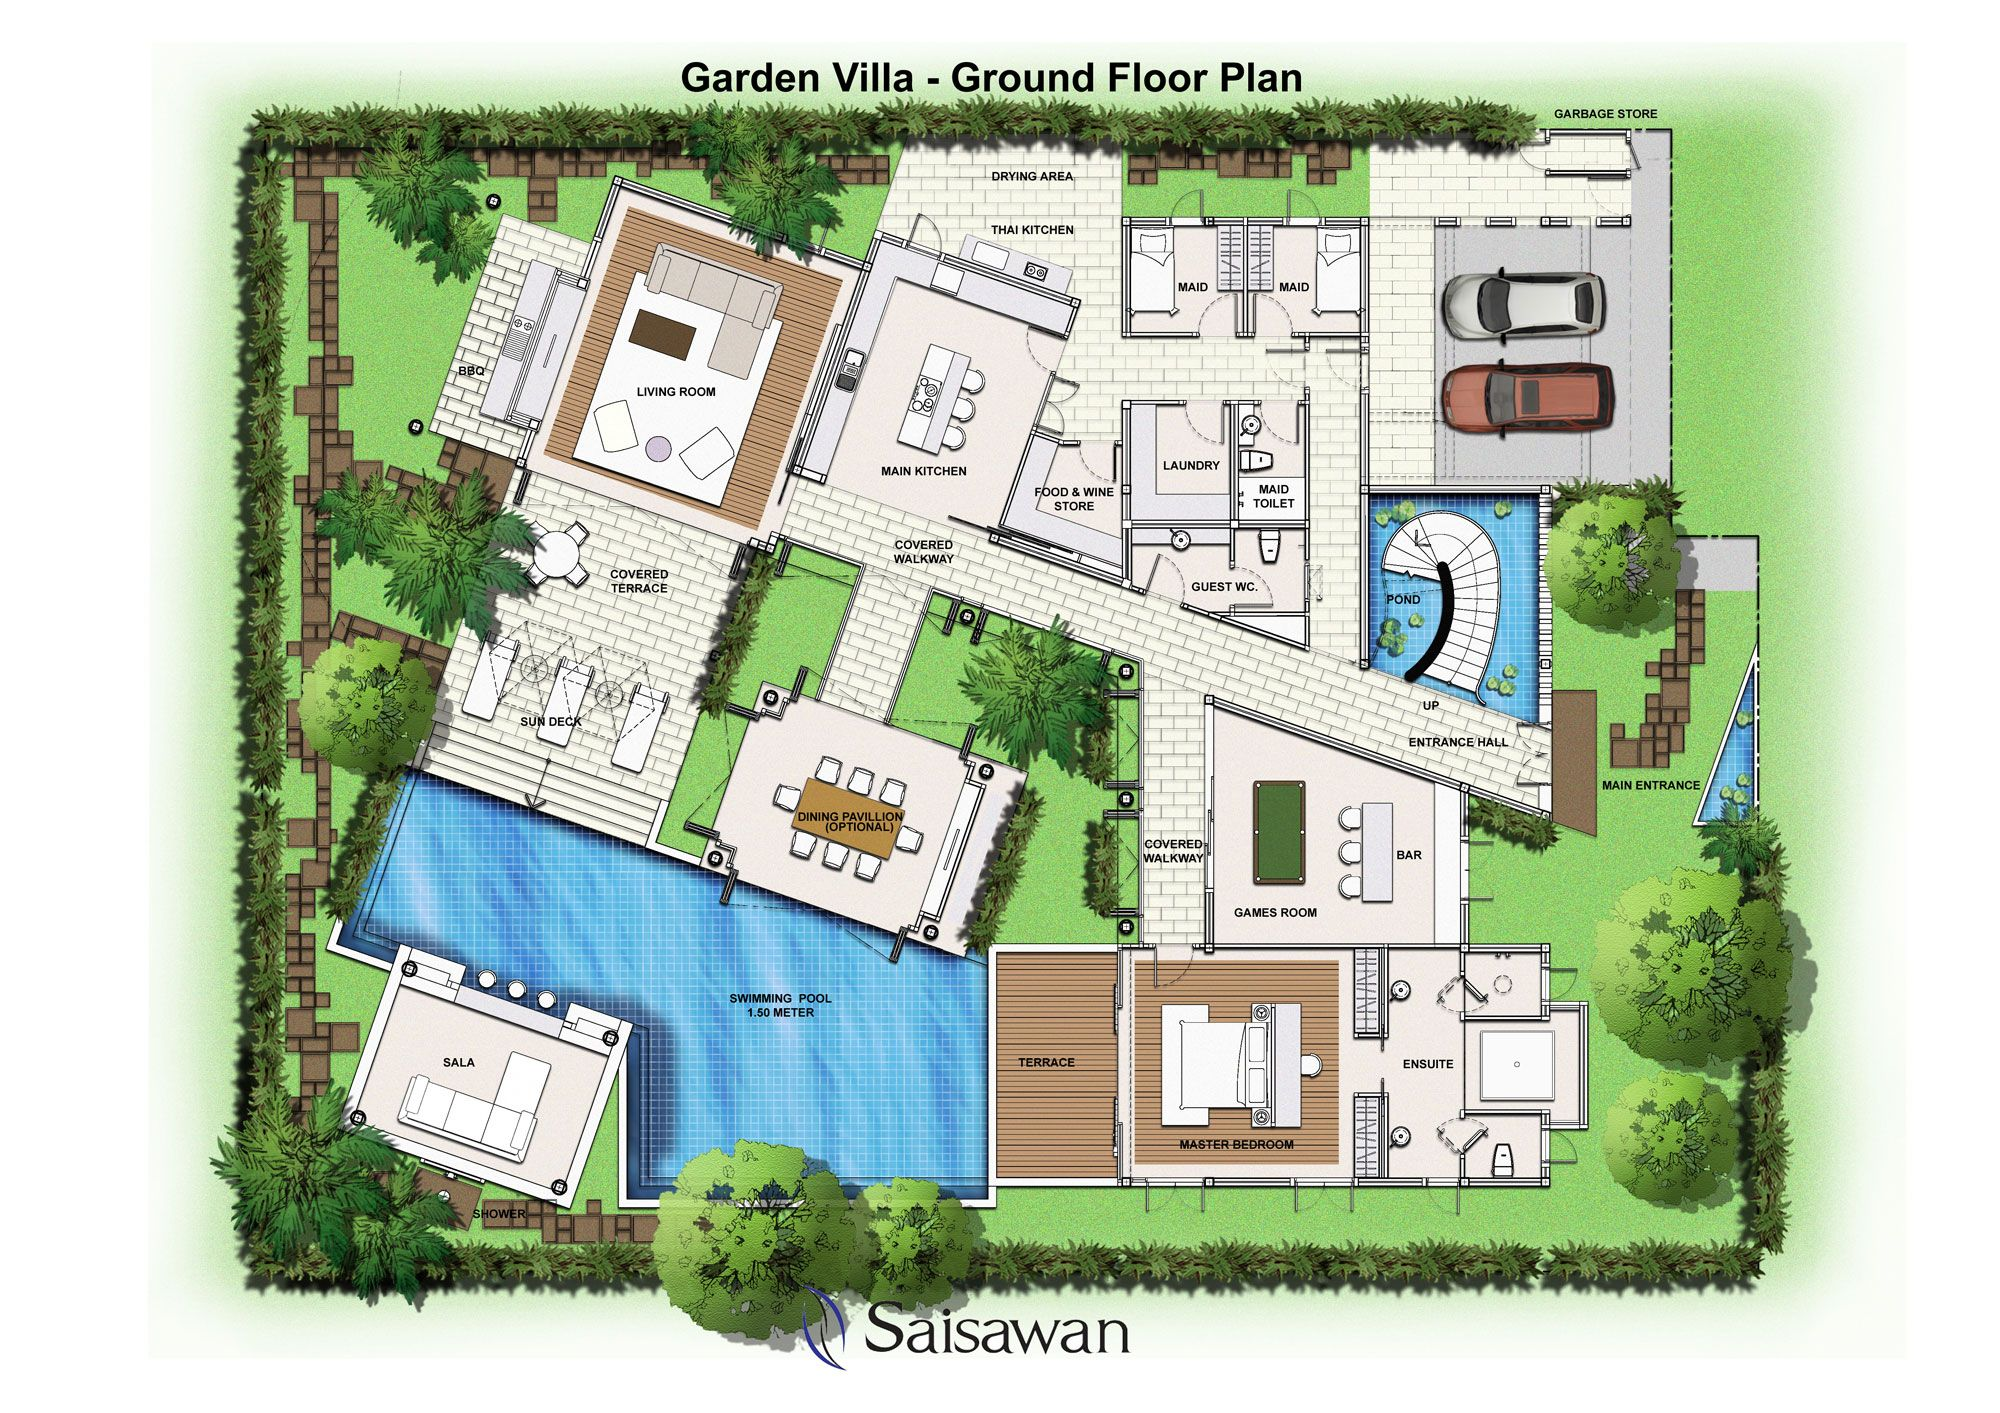 Saisawan garden villas ground floor plan house plans for Beautiful garden plans